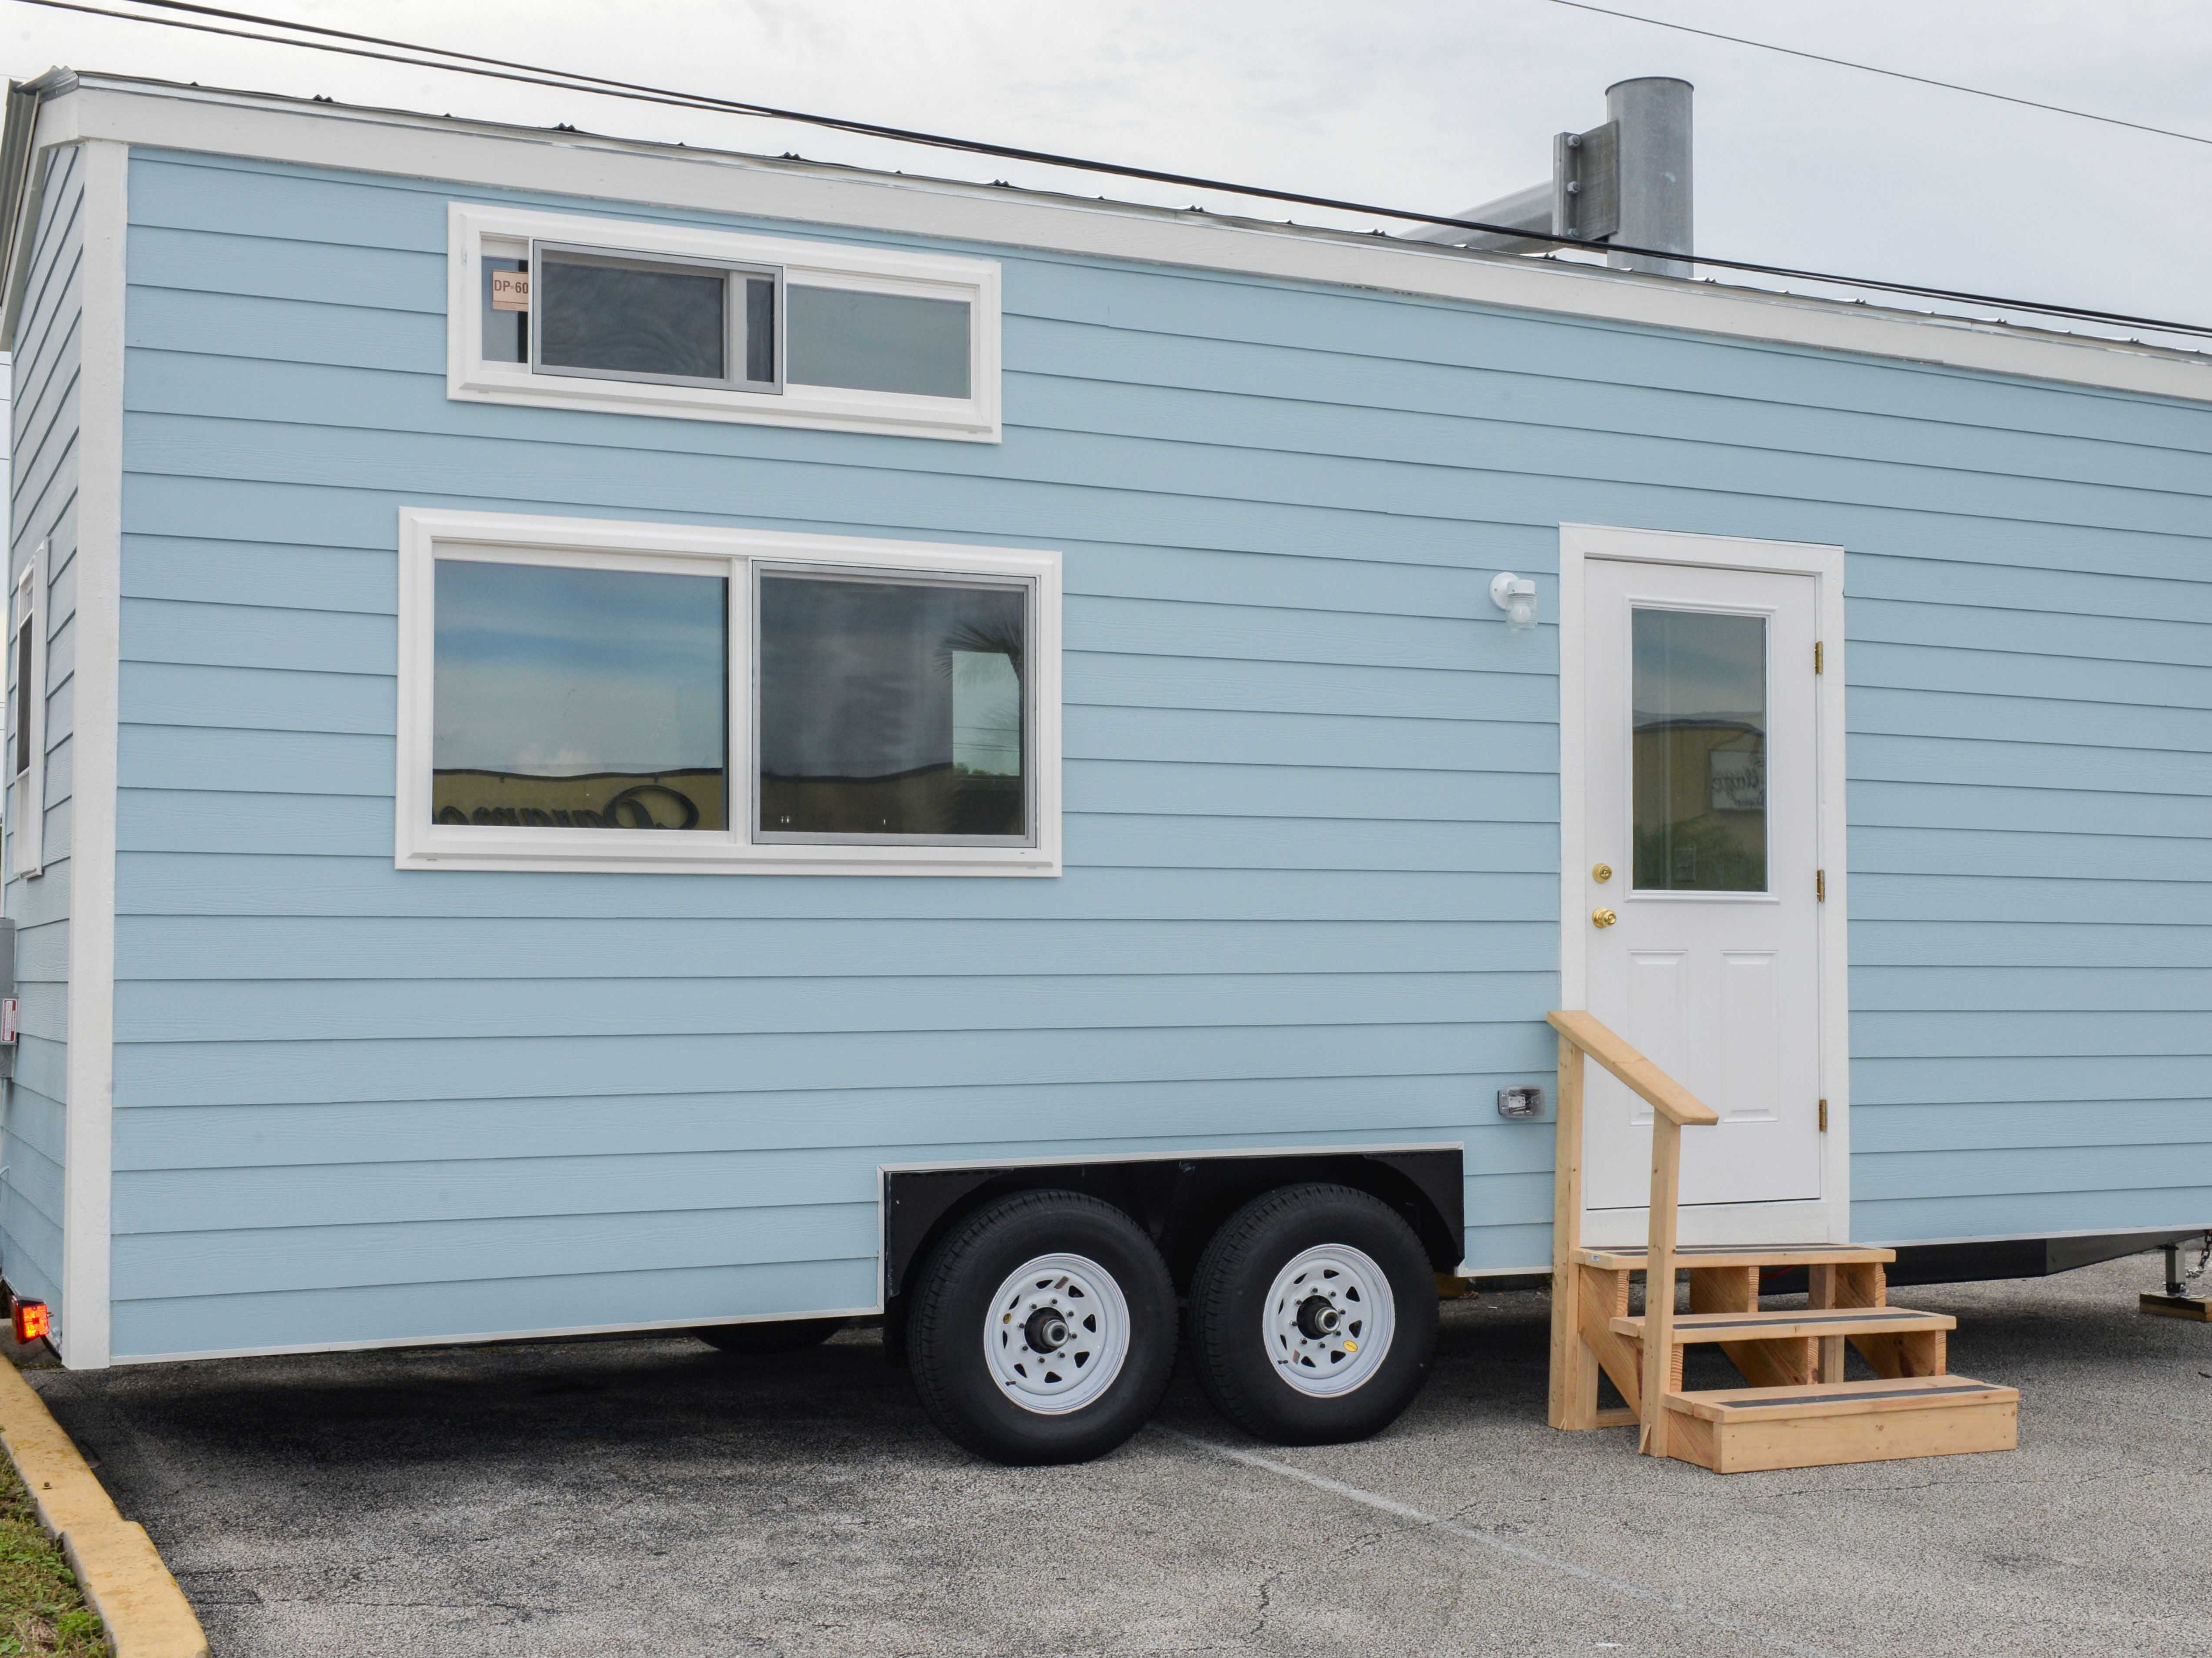 The 188-square-foot Diamond Lil' Tiny Home is being raffled off again to raise money for St. Lucie Habitat for Humanity. St. Lucie Battery & Tire bought the house for $44,000 in April as a fundraiser for Habitat.